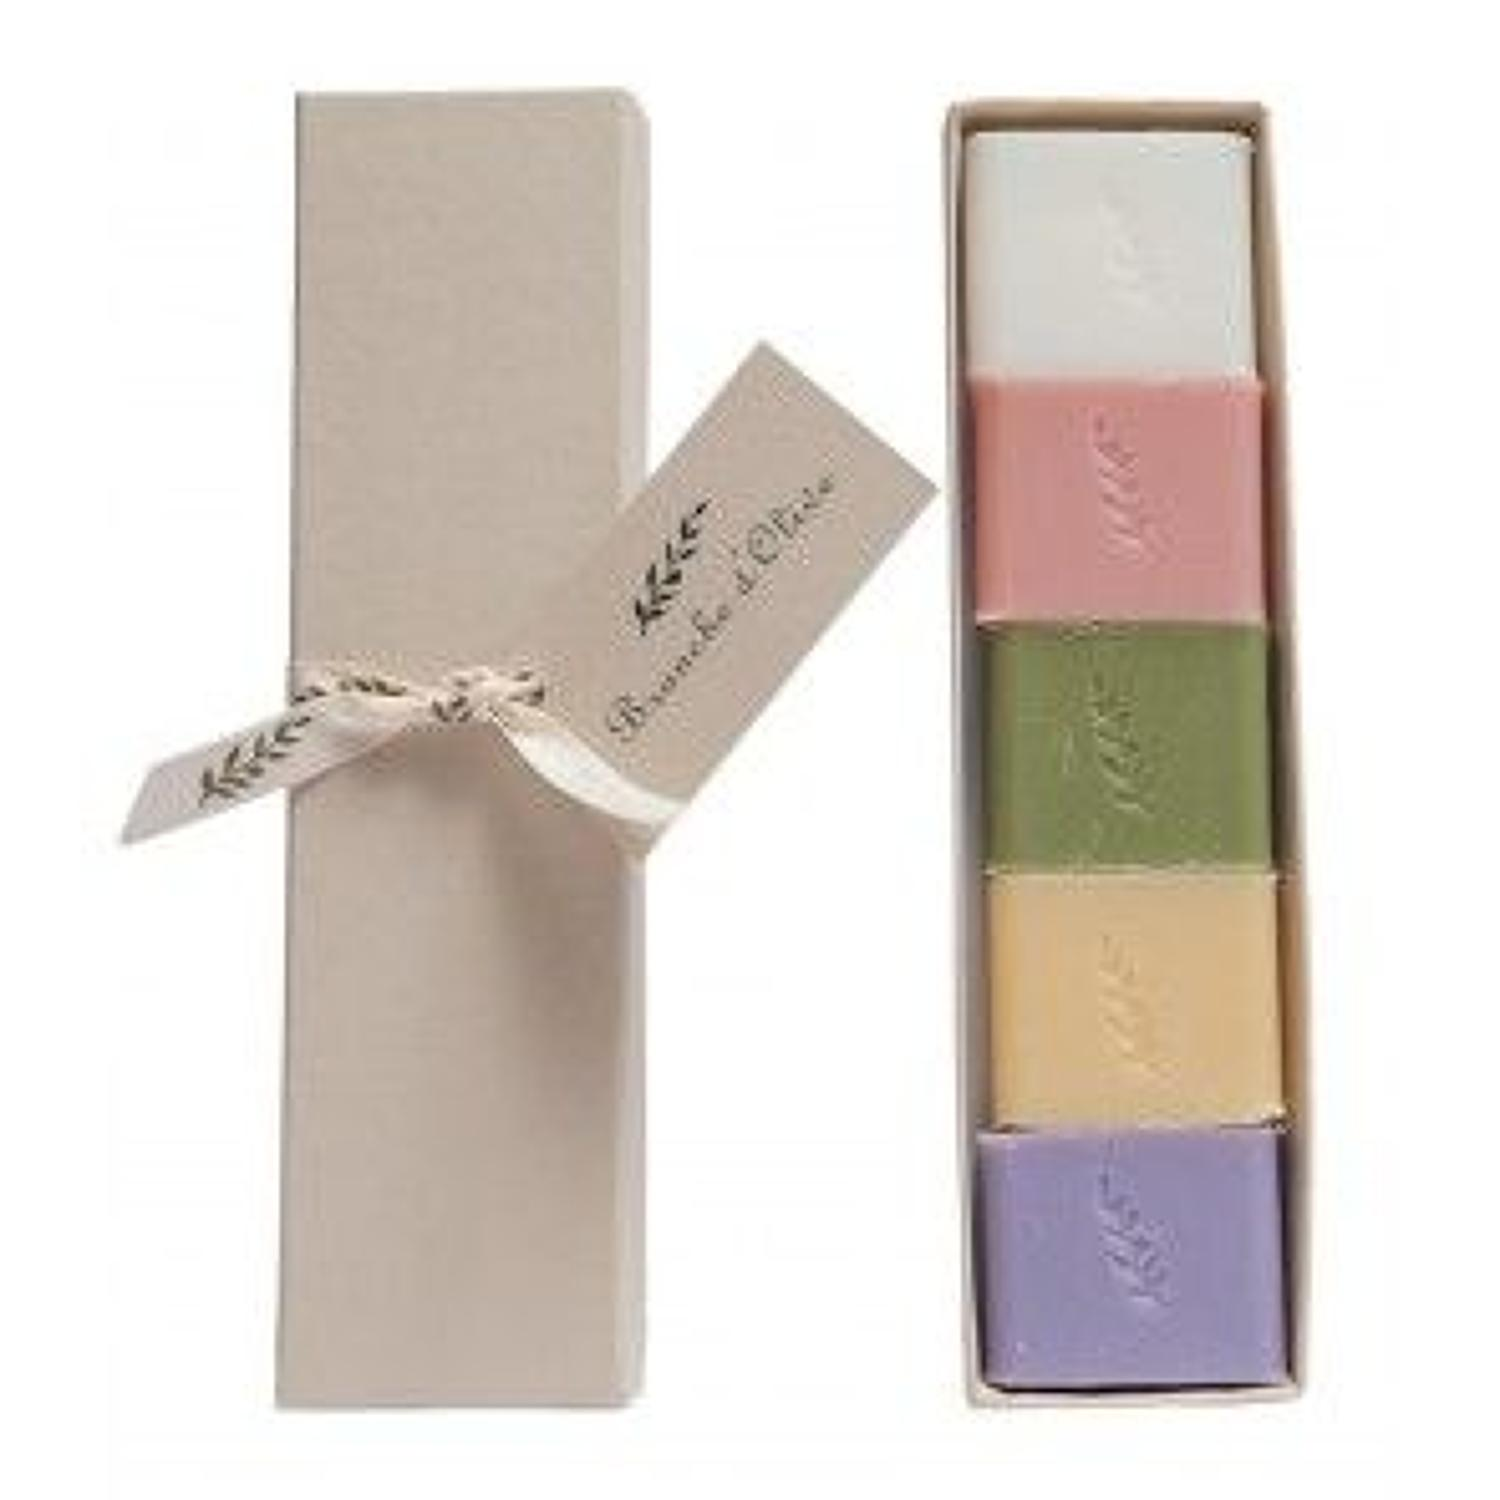 Branche de olive - Boxed guest soap - Assorted